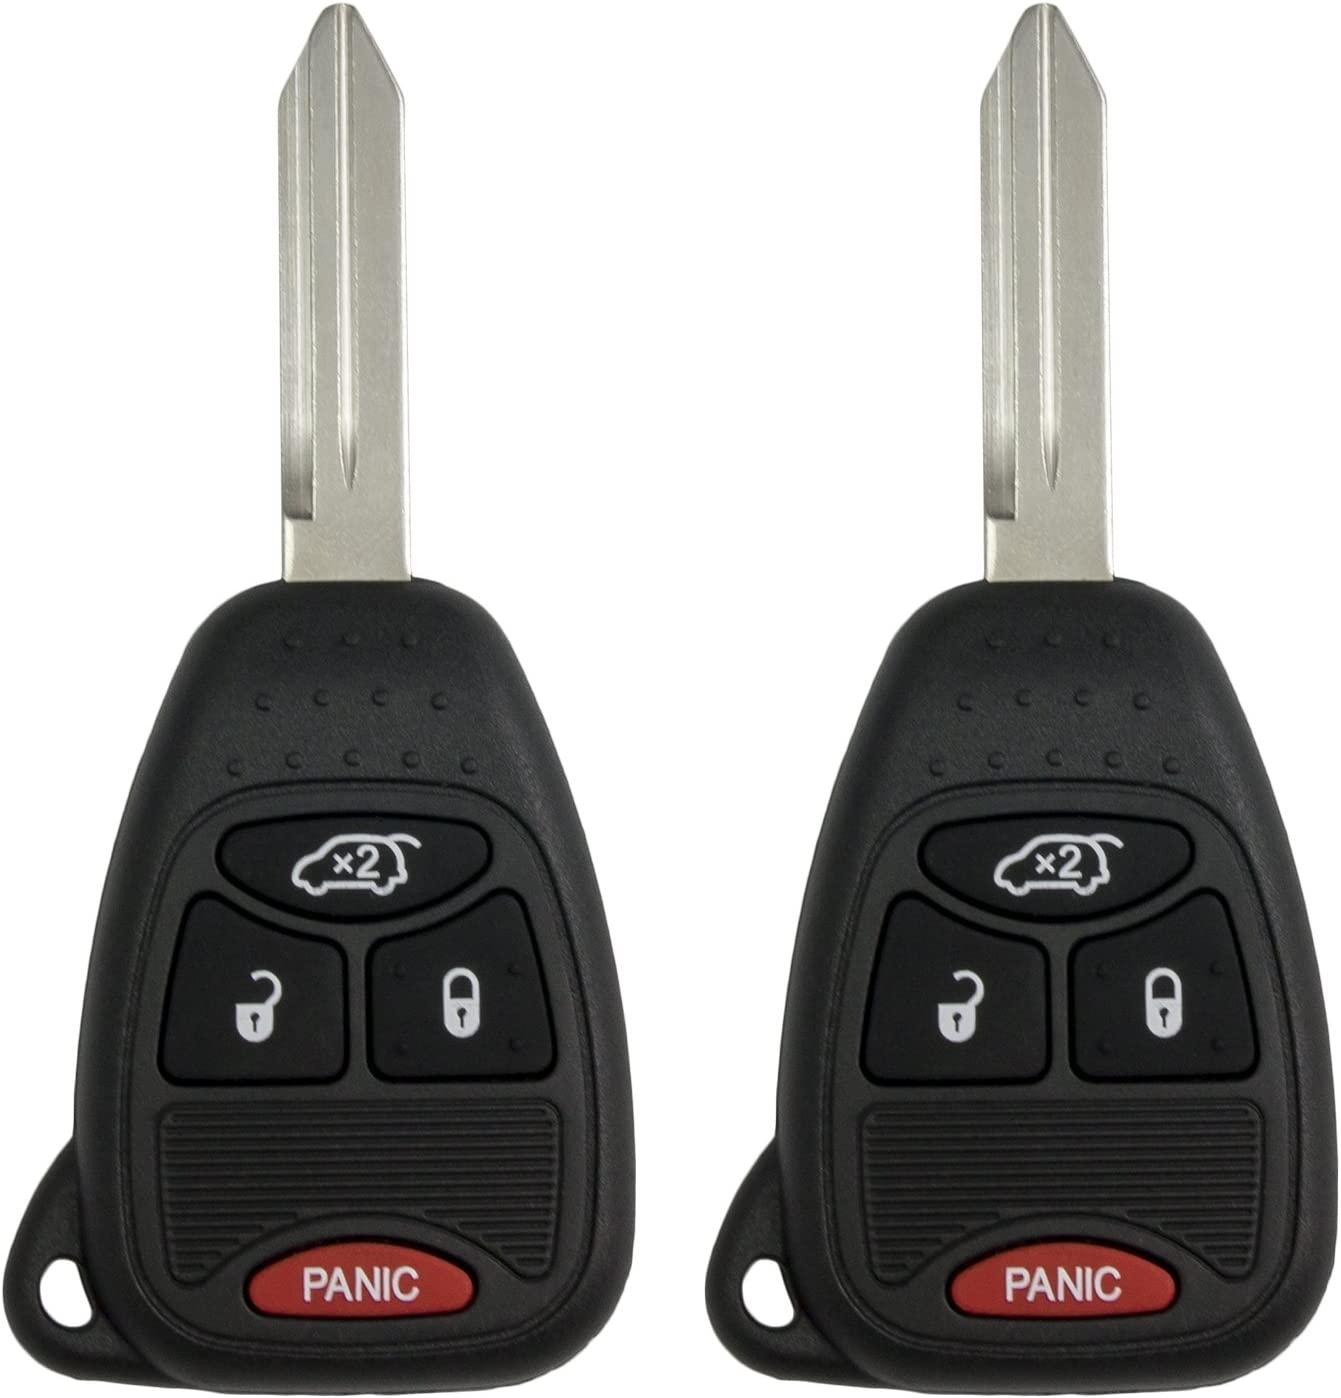 Keyless2Go New Uncut Keyless Remote Fobik Key Fob Replacement for Vehicles That Use M3N5WY72XX 2 Pack